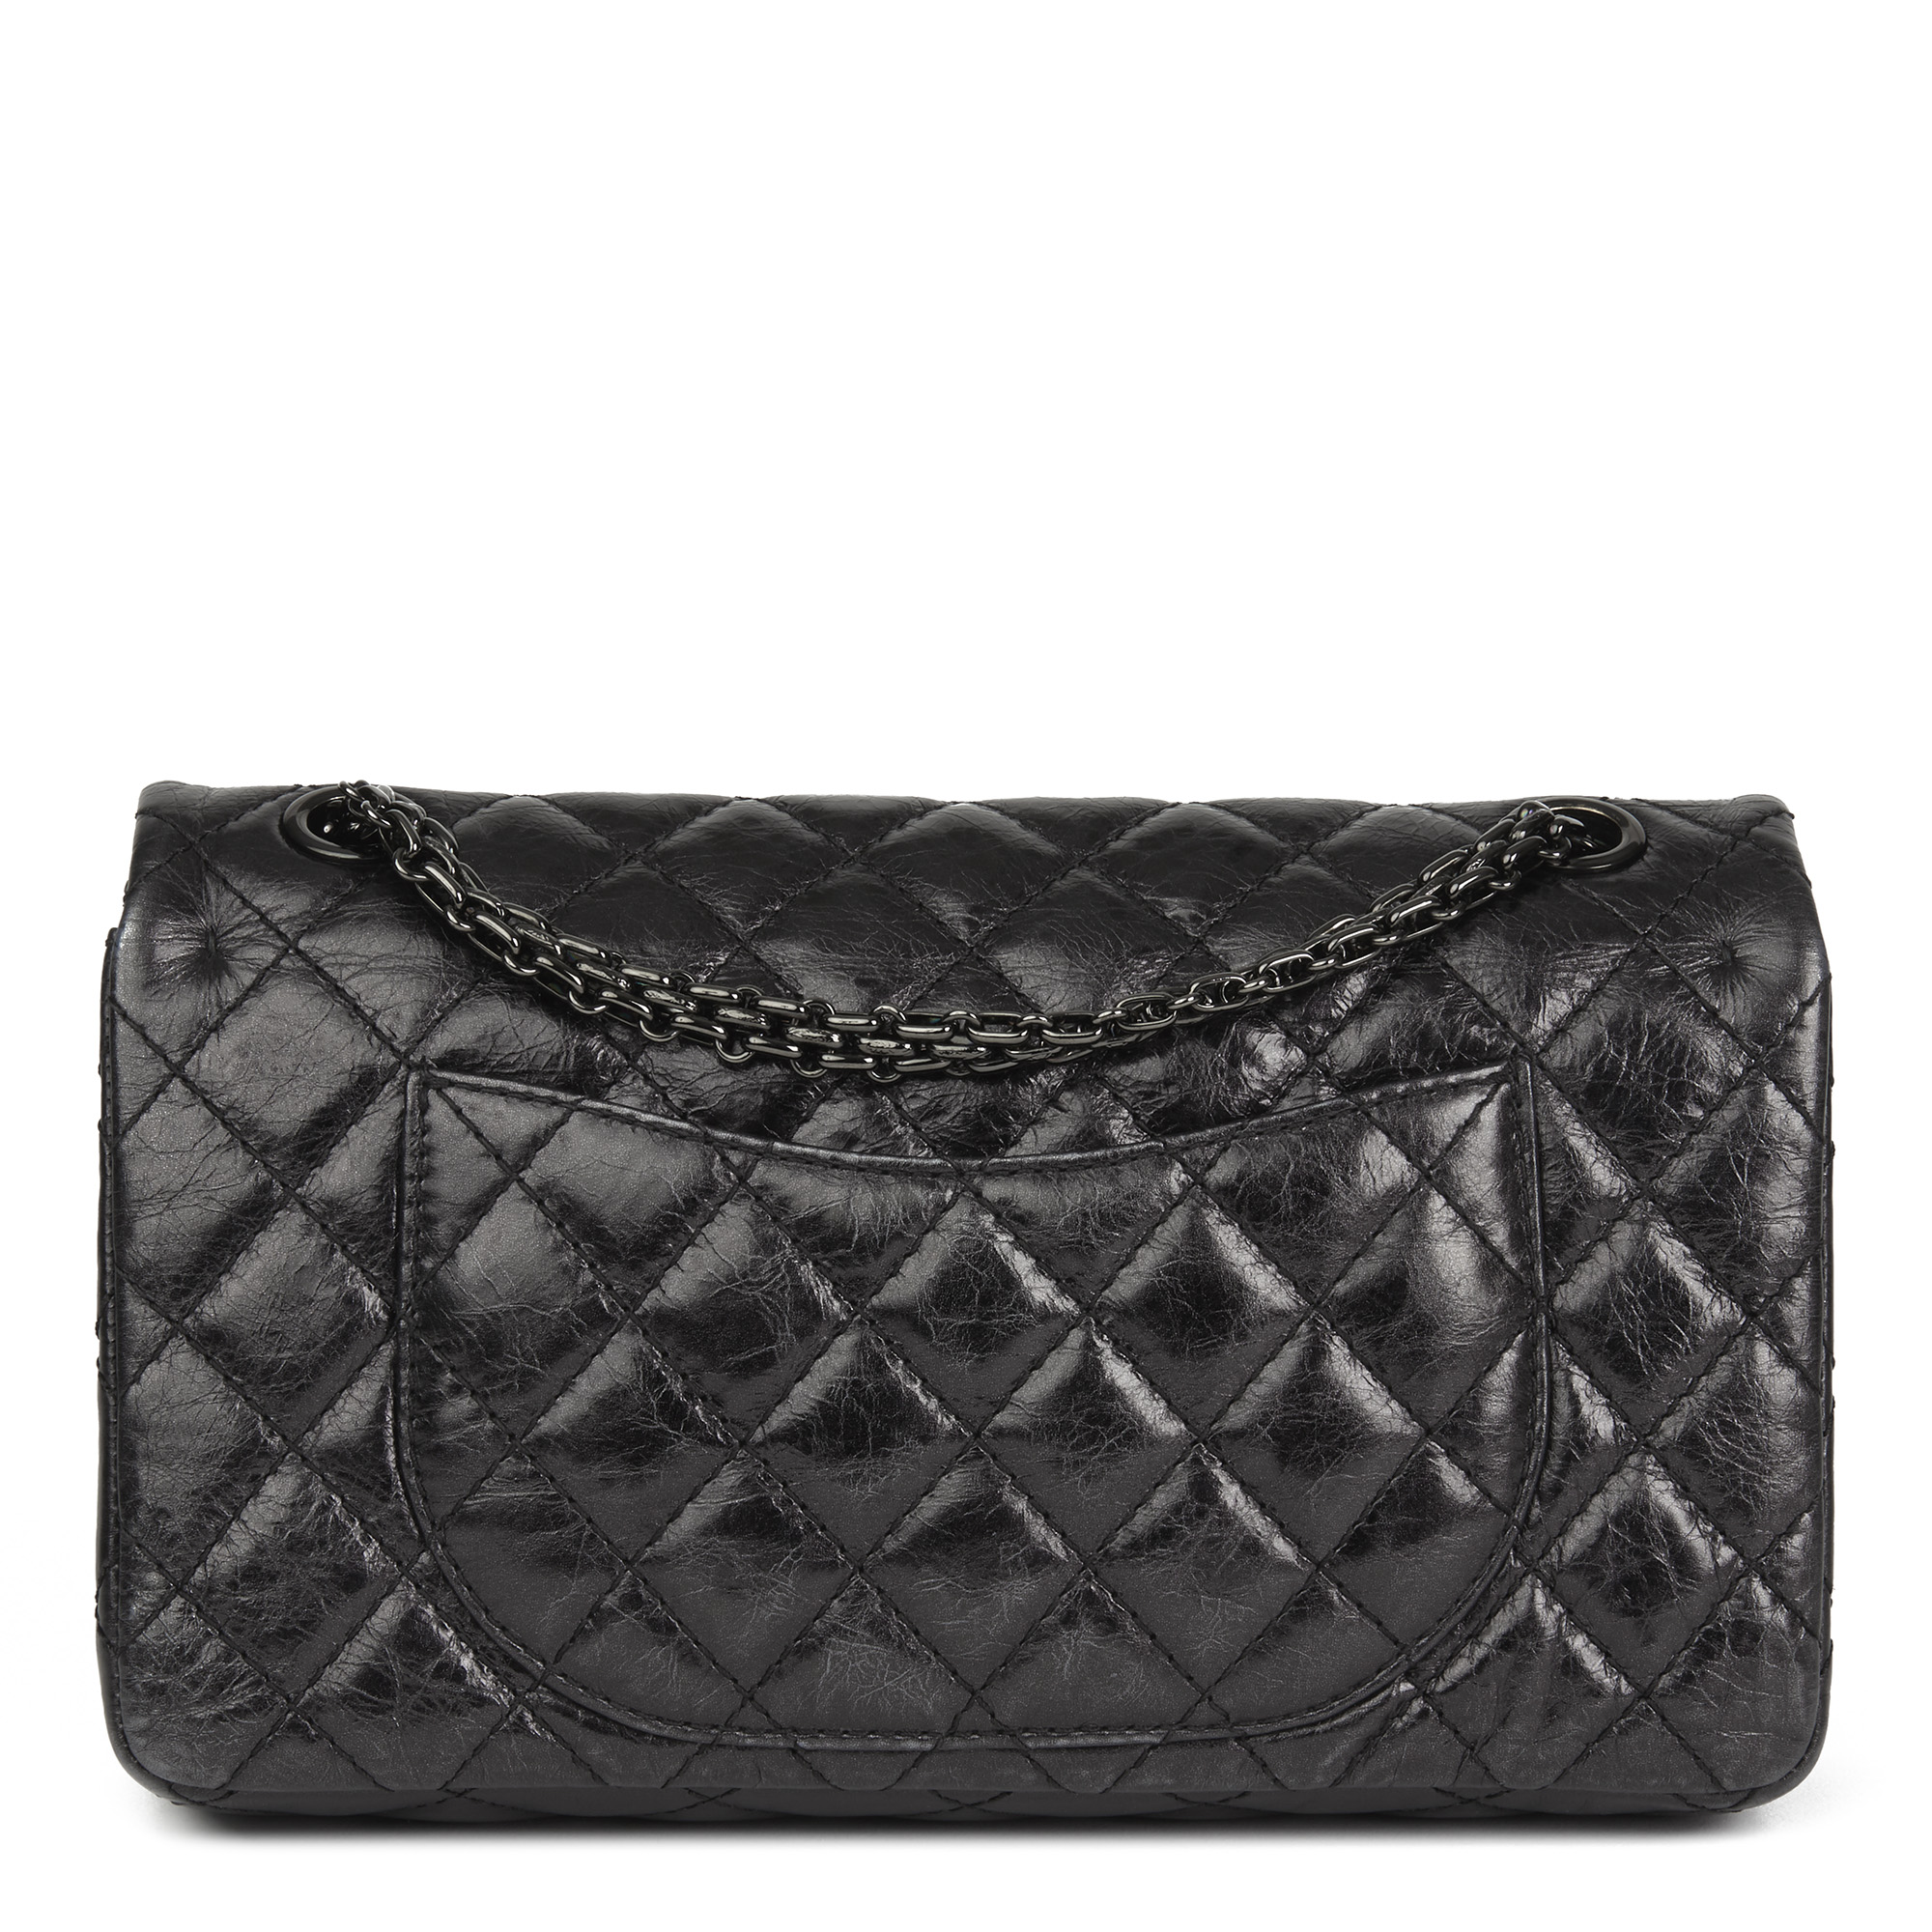 Details about CHANEL BLACK QUILTED GLAZED CALFSKIN LEATHER SO BLACK 2.55  REISSUE 225. 6fbf5e39f1fd5